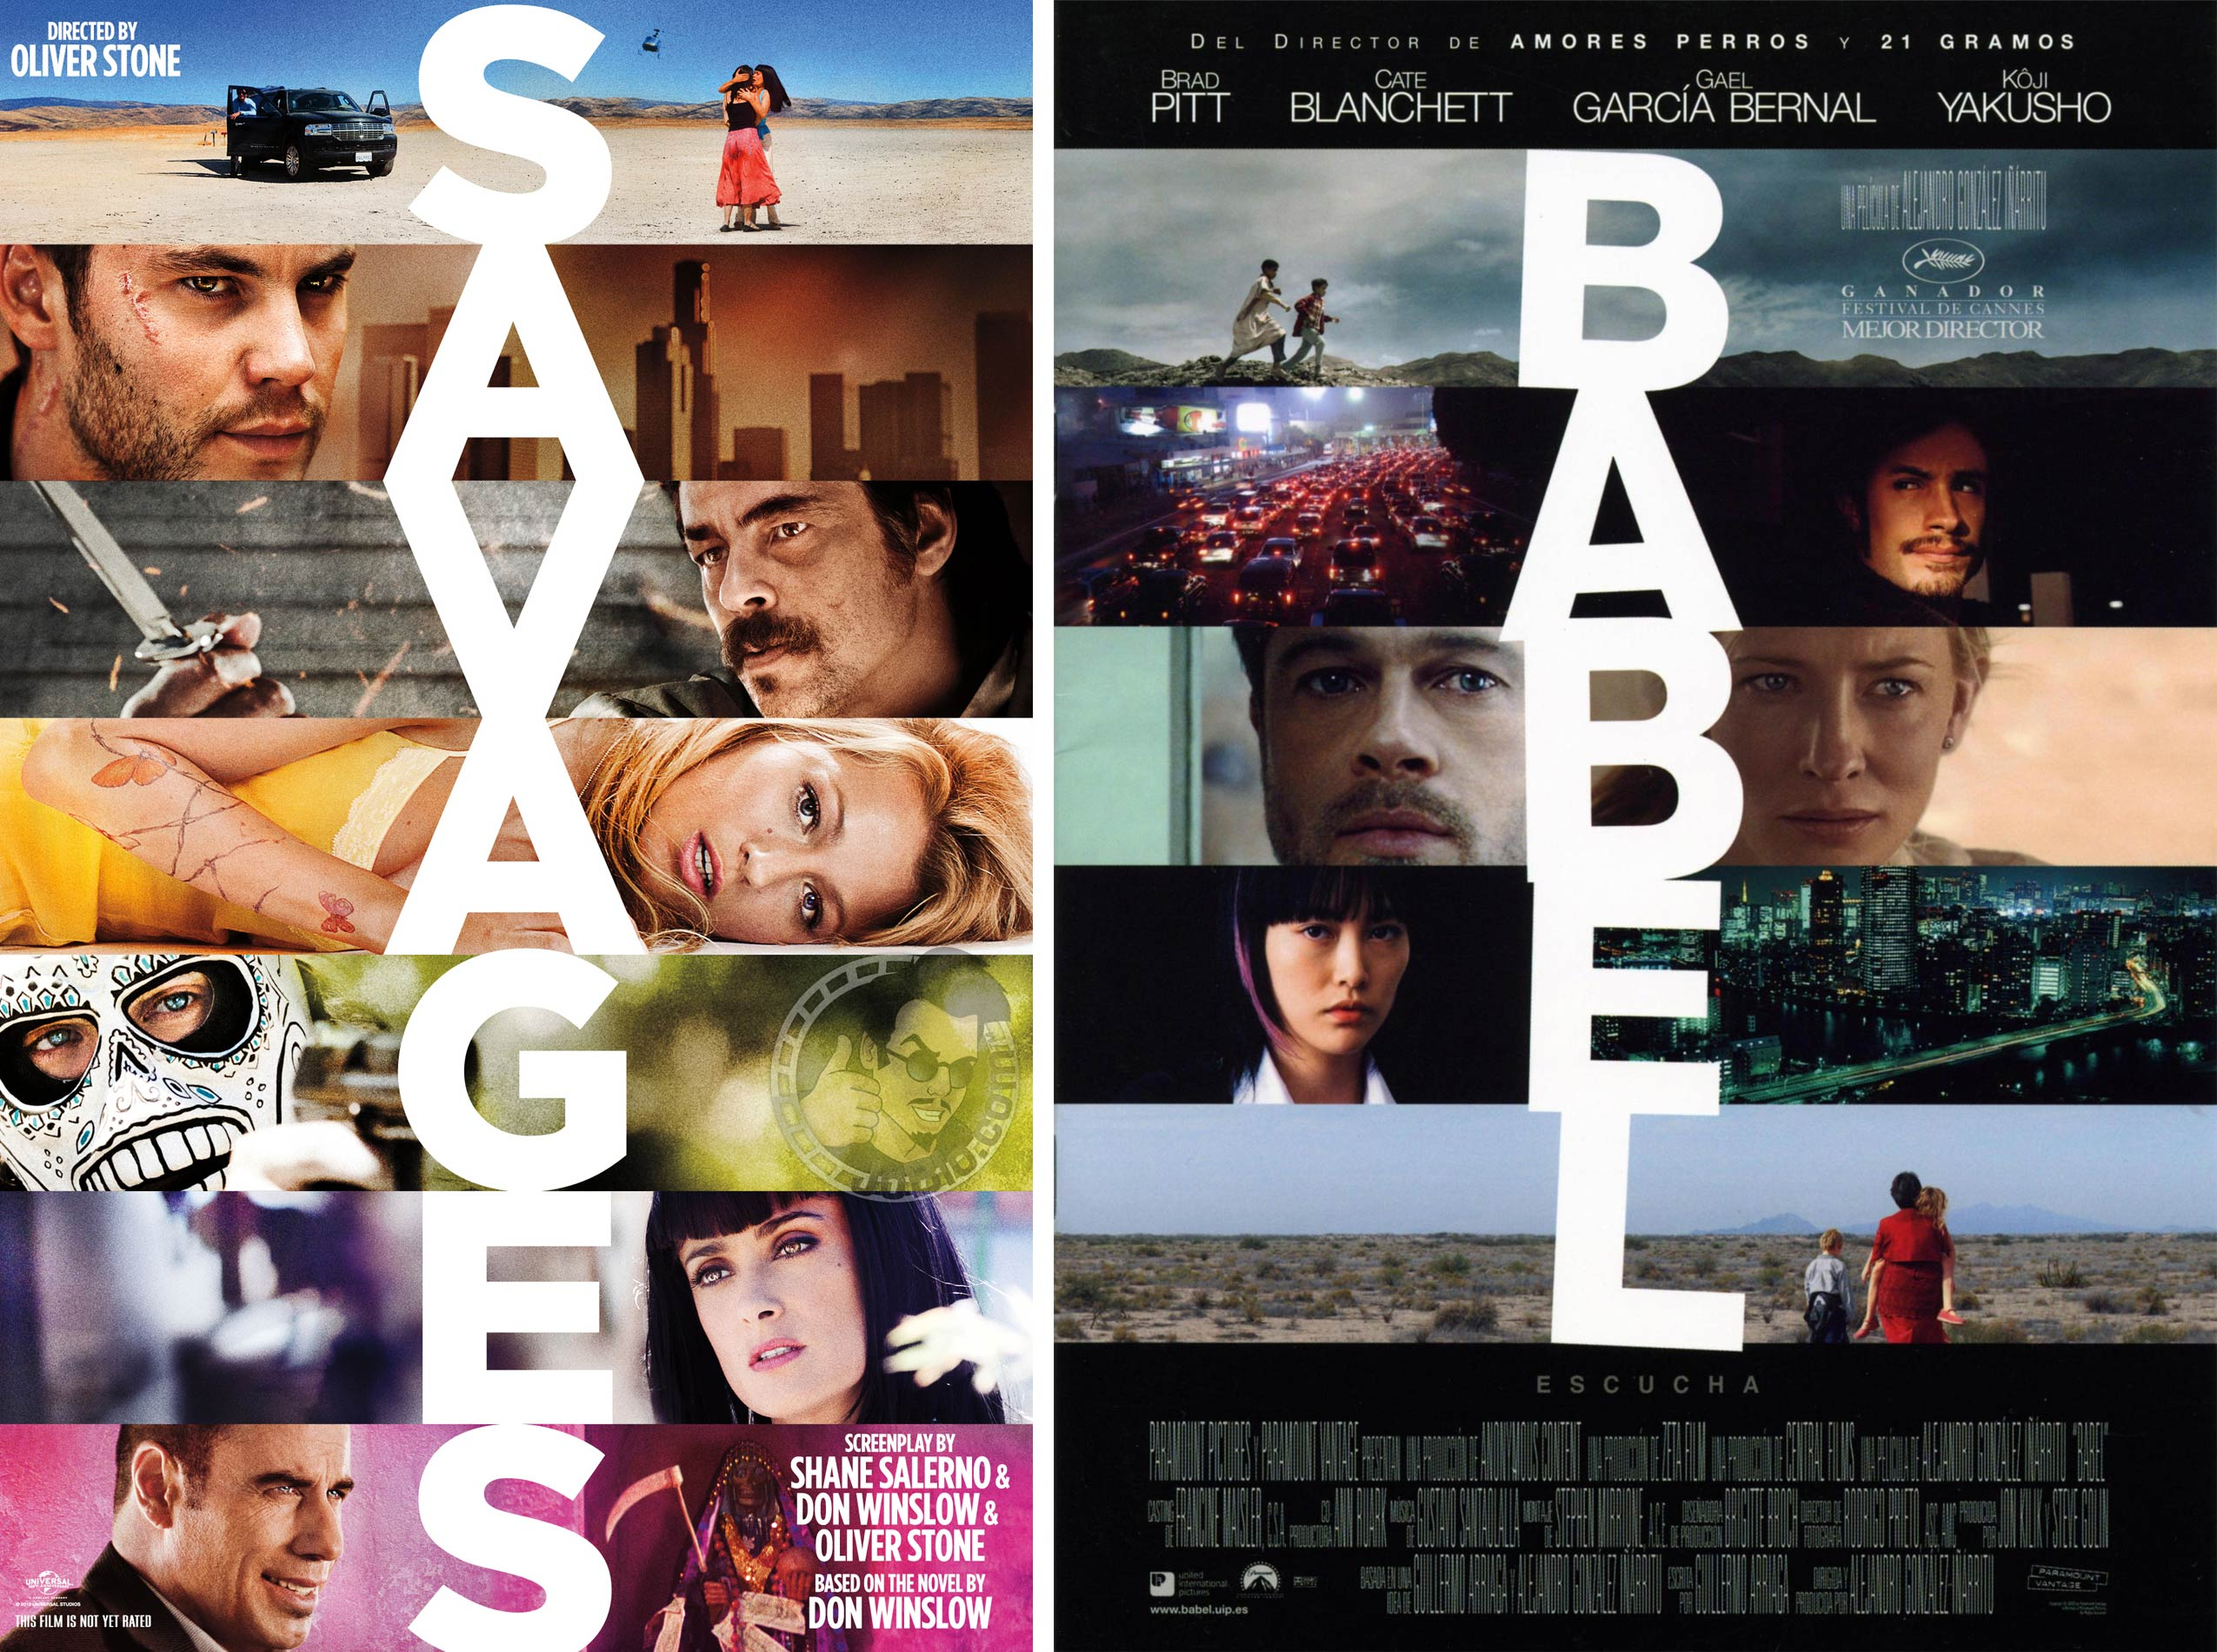 http://cromeyellow.com/wp-content/uploads/2012/04/savages_babel.jpg